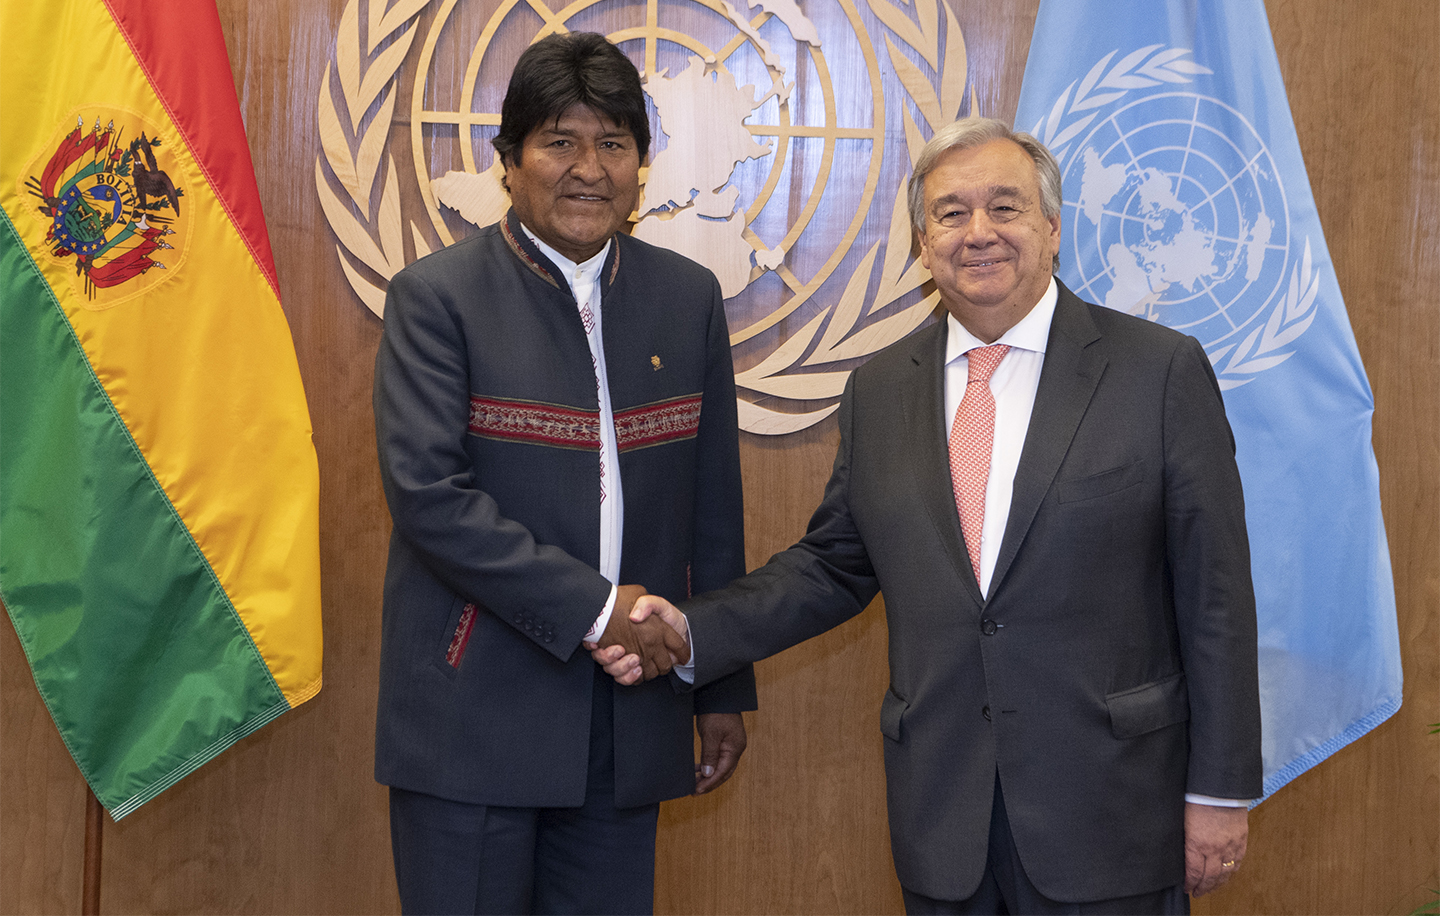 Secretary General meets with President, PLURINATIONAL STATE OF BOLIVIA.